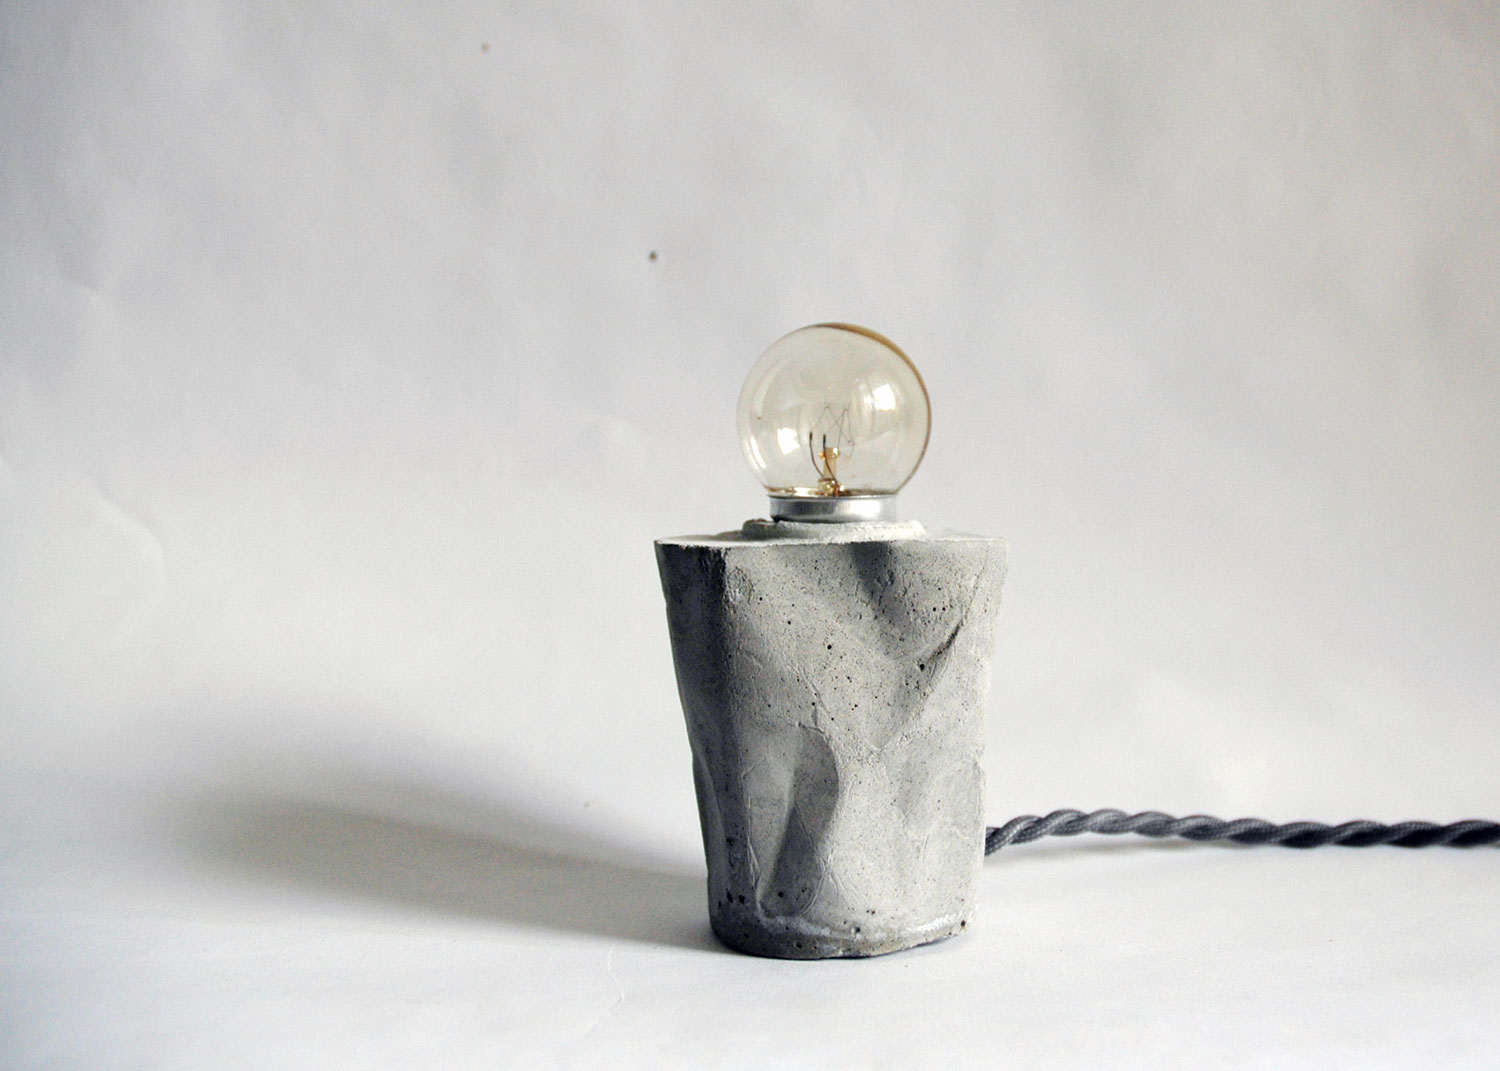 Concrete Lights Experiment by Elim Cheng | Yellowtrace